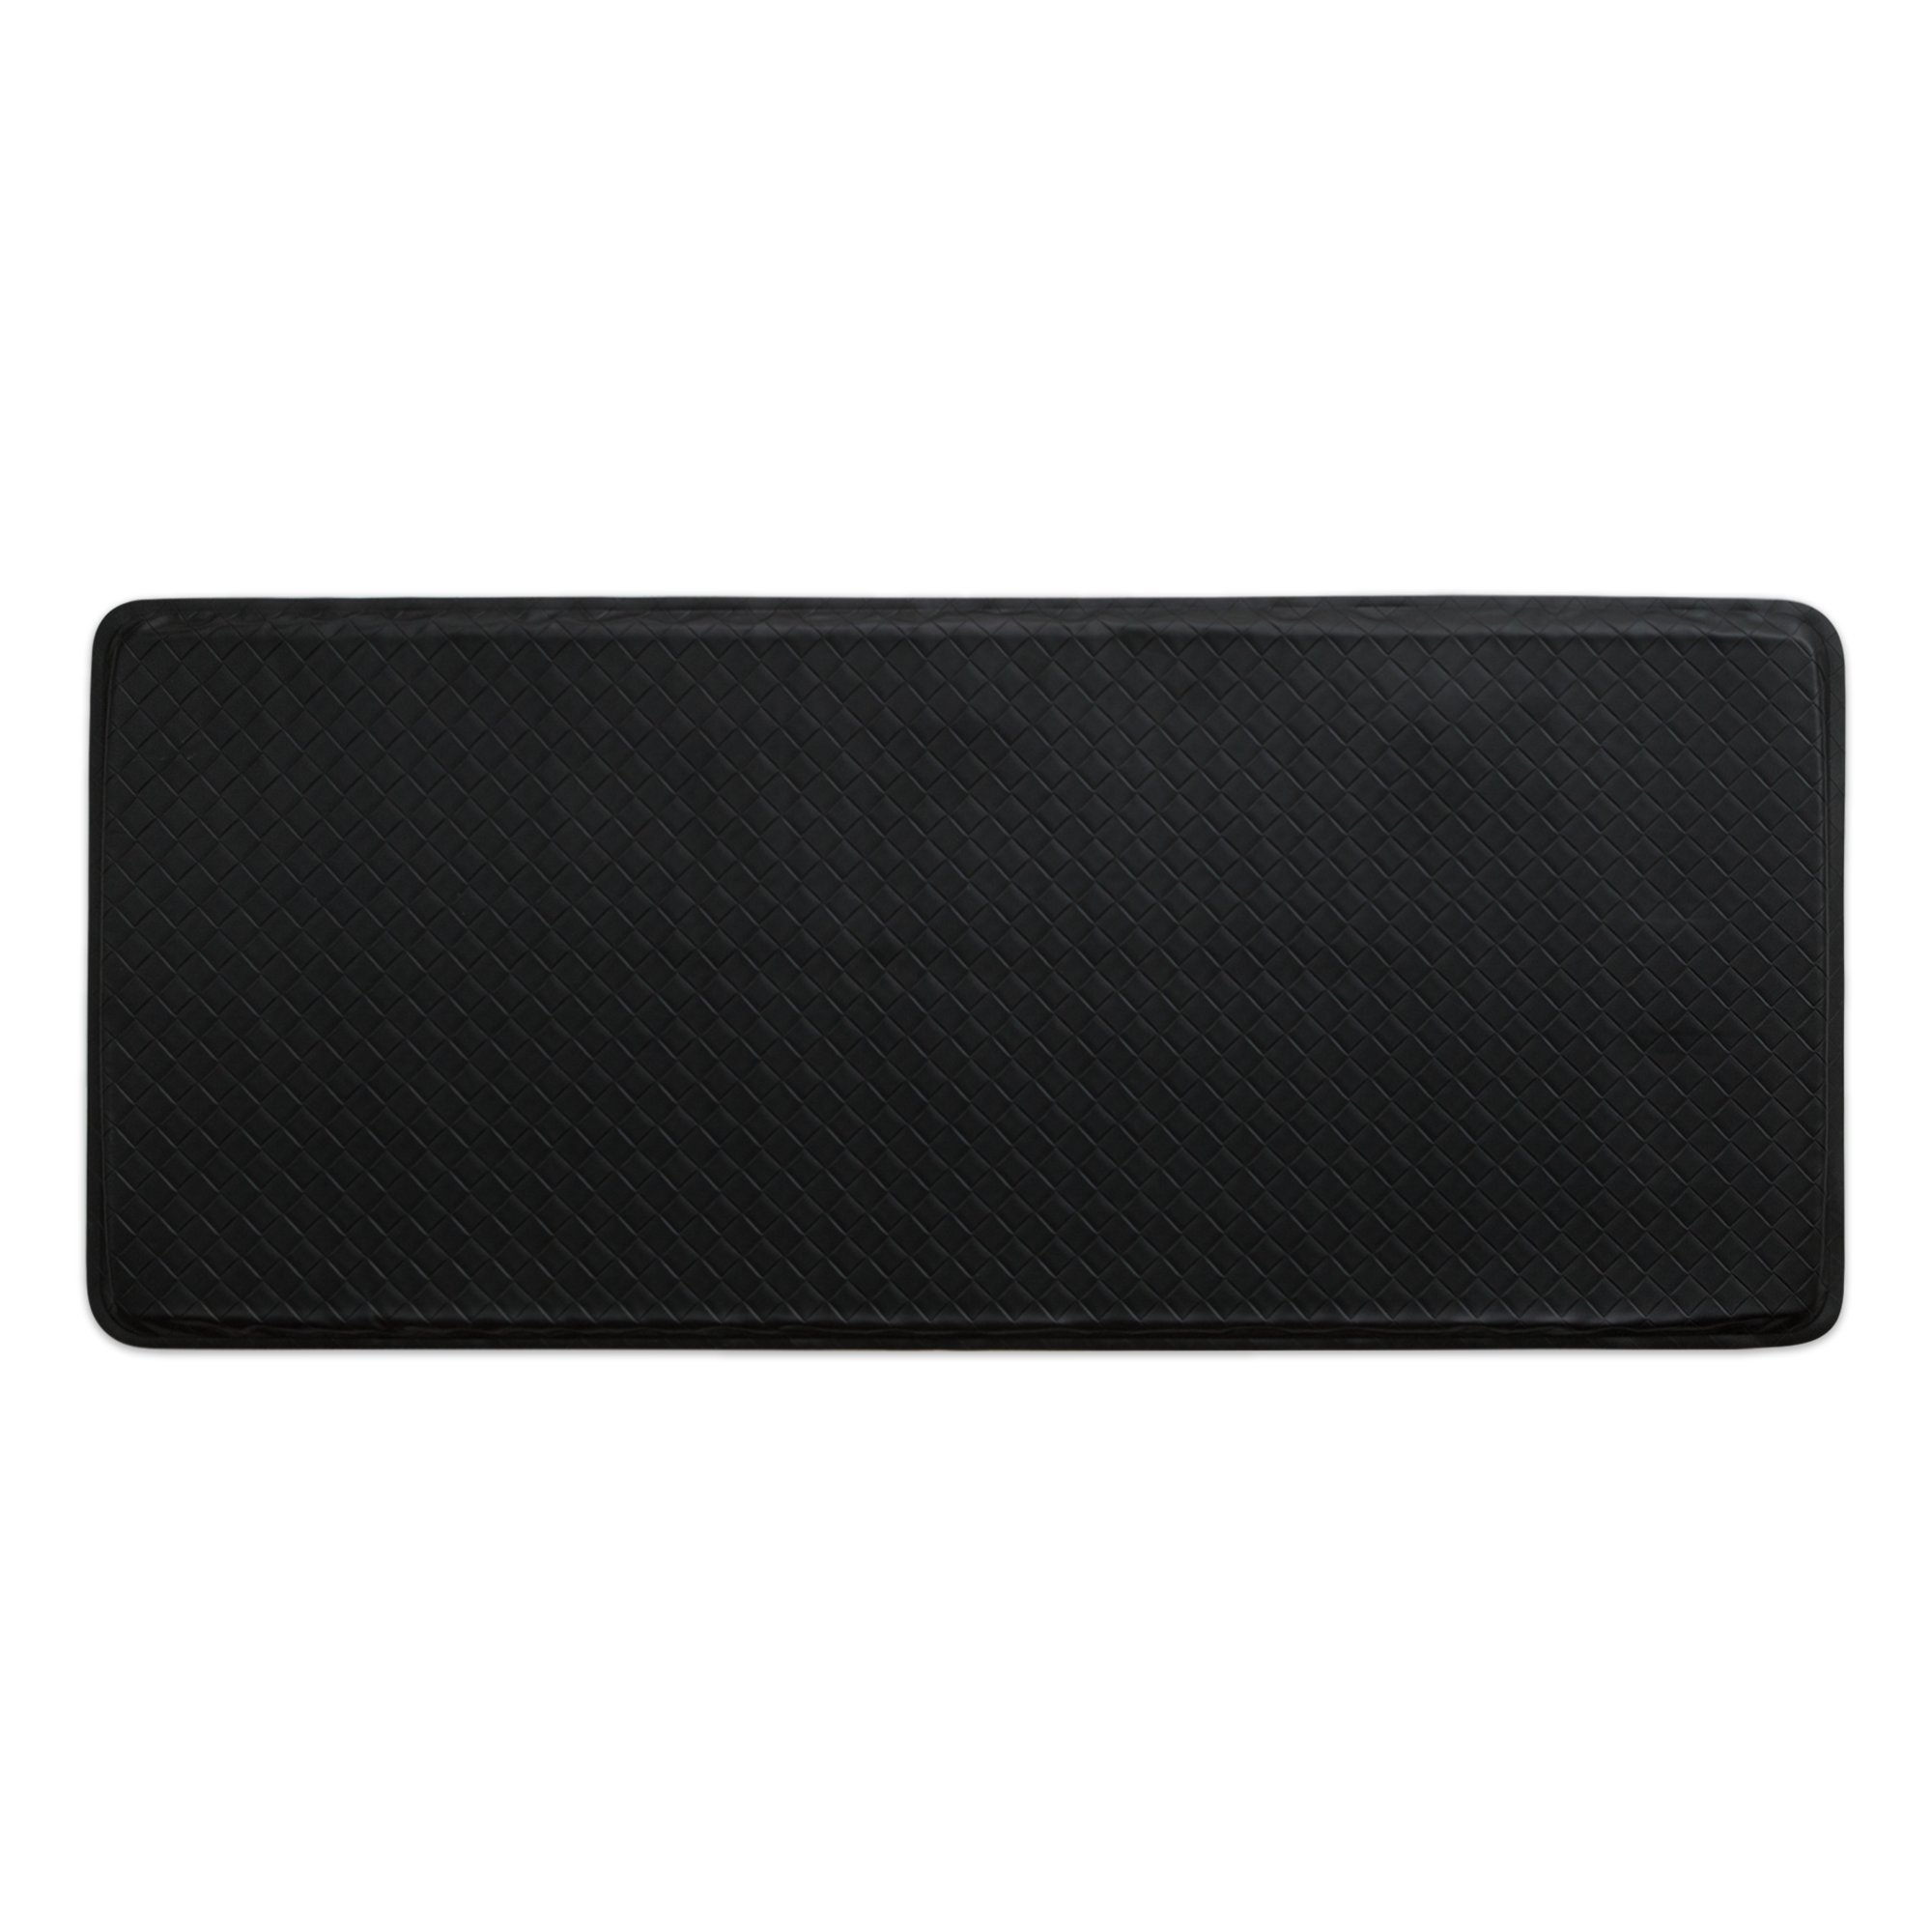 """GelPro Classic Anti-Fatigue Kitchen Comfort Chef Floor Mat, 20x48"""", Basketweave Black Stain Resistant Surface with 1/2"""" Gel Core for Health and Wellness"""